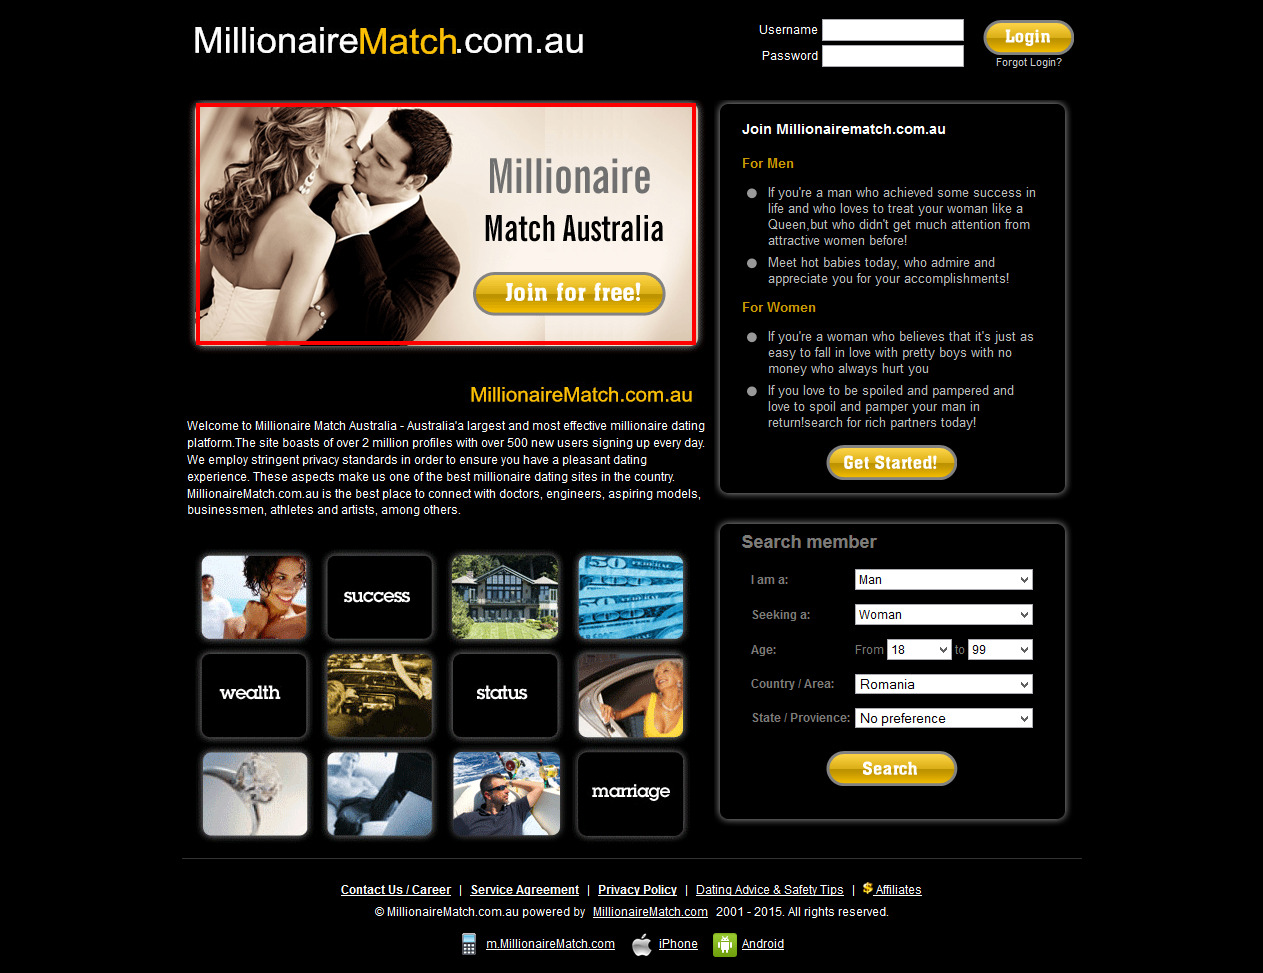 dating millionaires australia Dating sites for millionaires in australia full homo service includes a minimum number of introductions and a homo of services including grooming, .